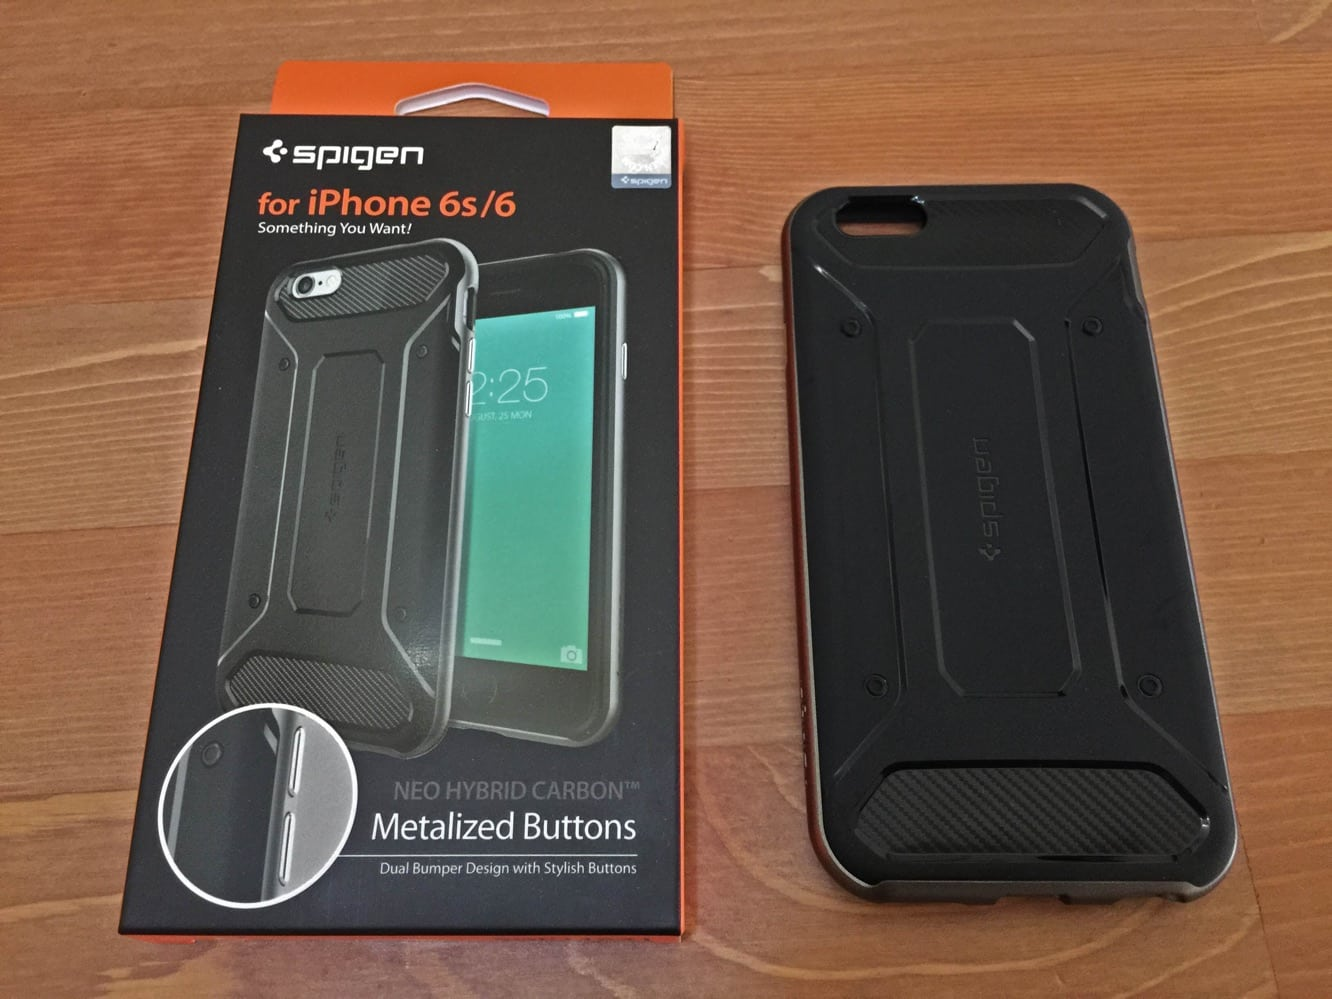 Numerous companies debut iPhone 6s and iPhone 6s Plus cases